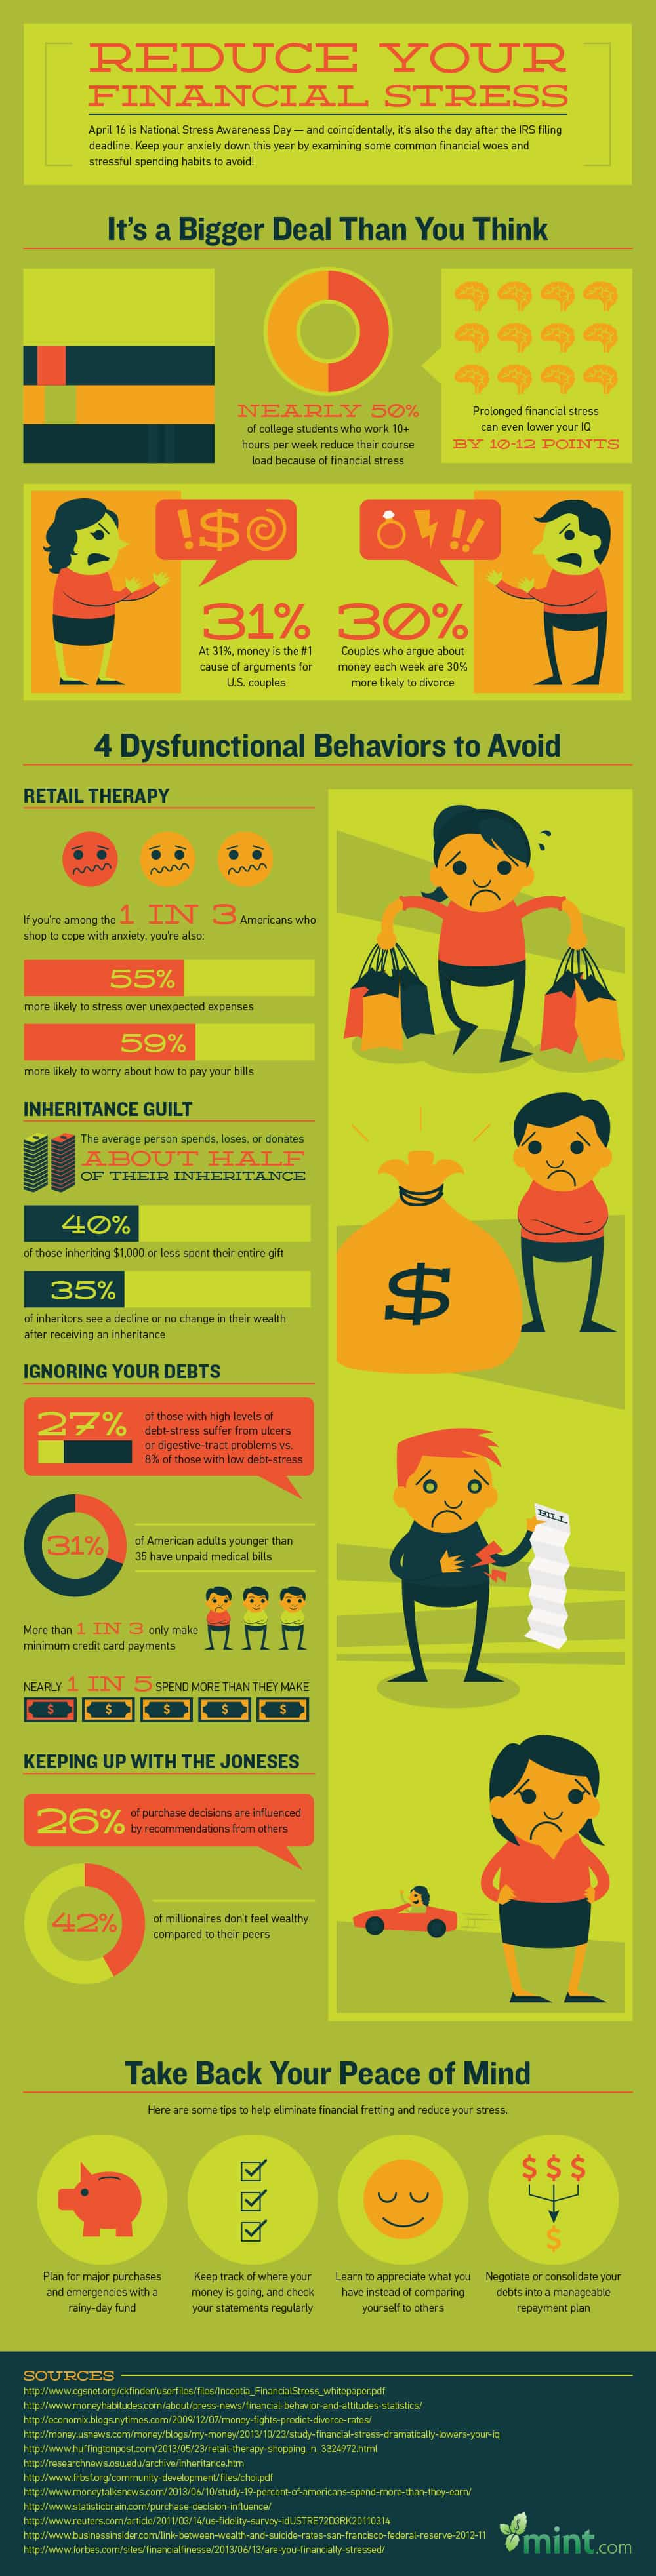 How to Worry Less and Save More: A Visual Guide to Reducing Your Financial Stress :: Mint.com/blog